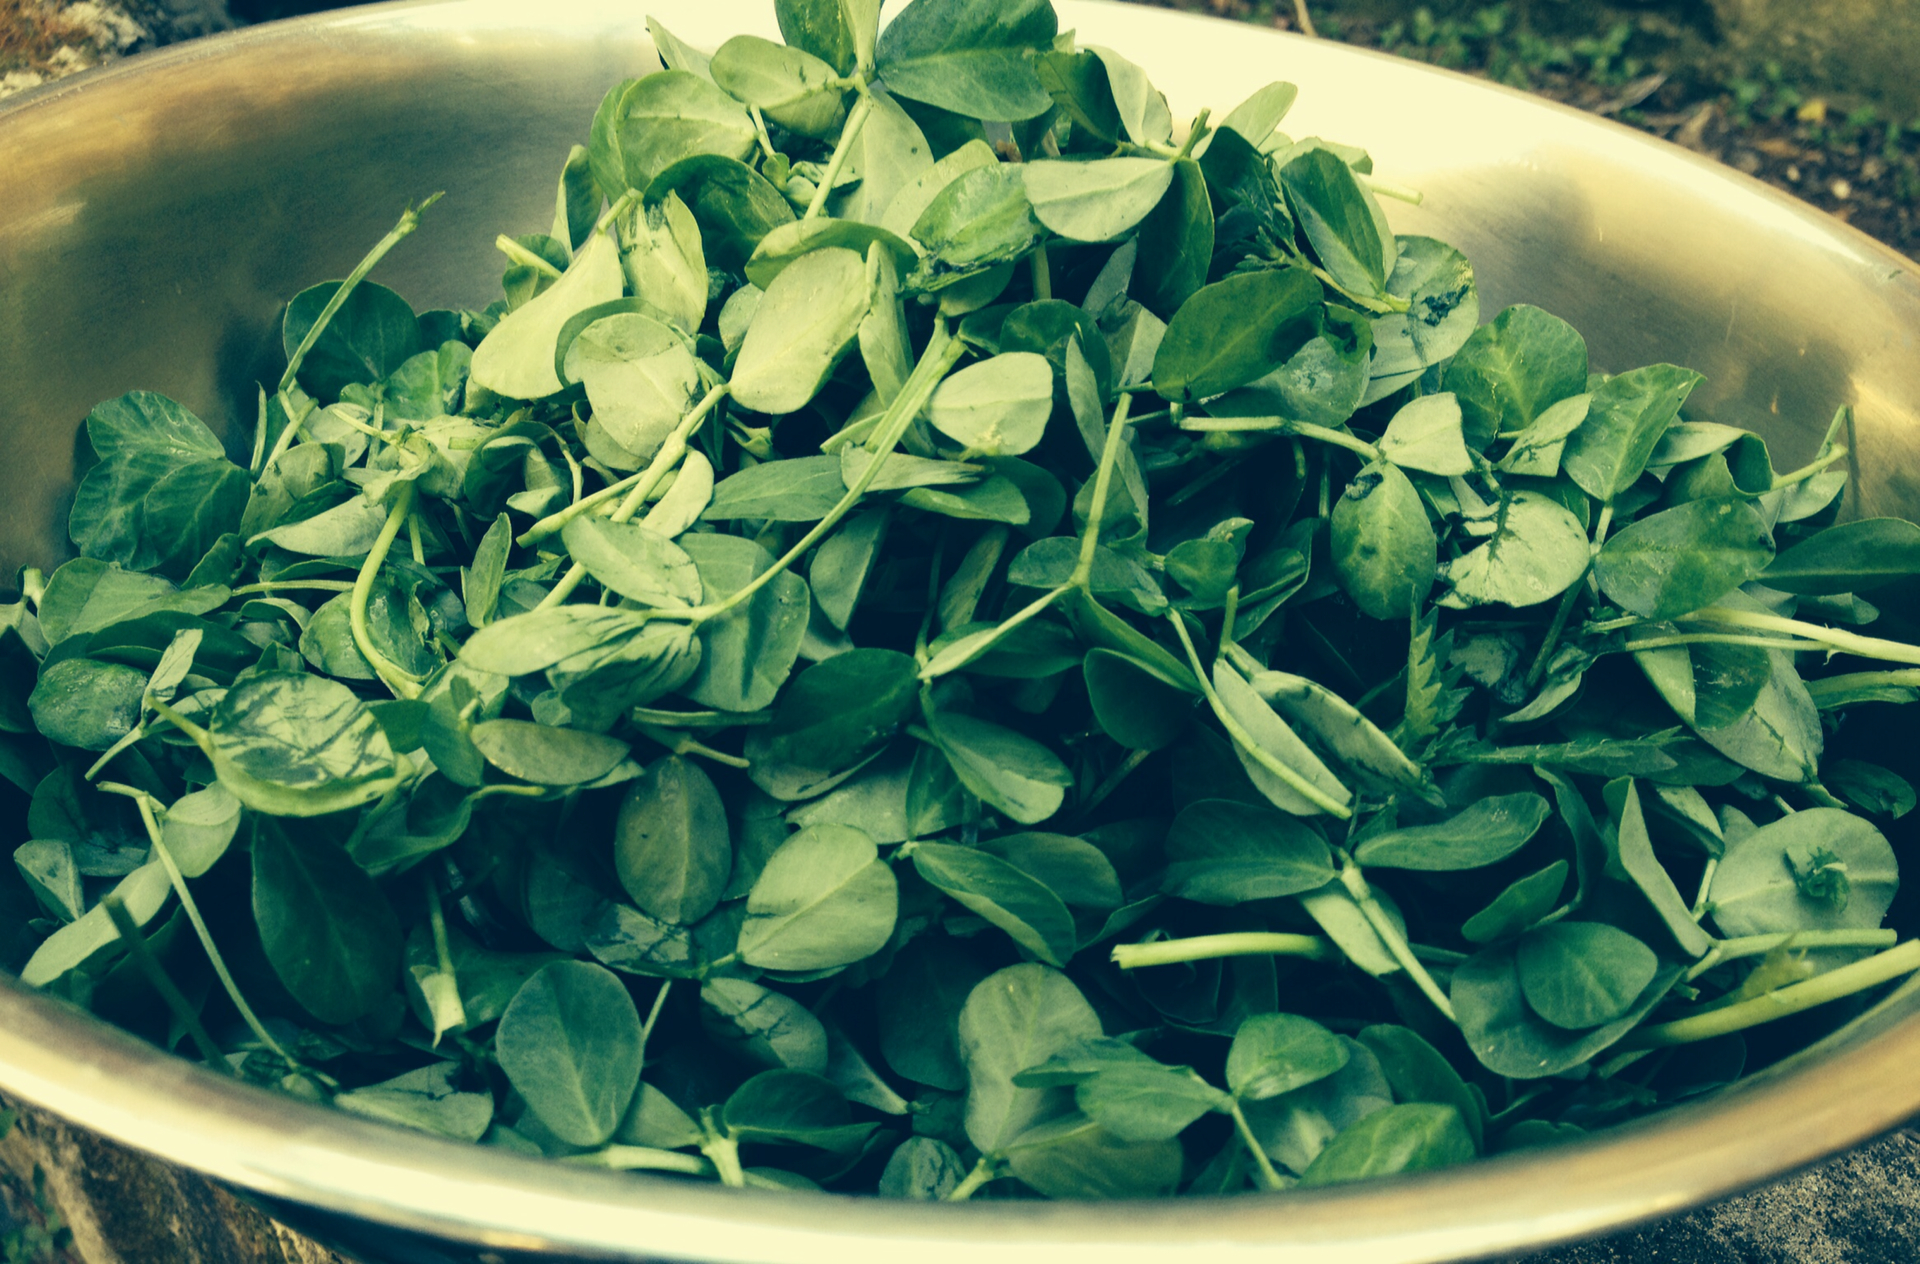 Freshly picked fenugreek leaves for tonight's goat curry...